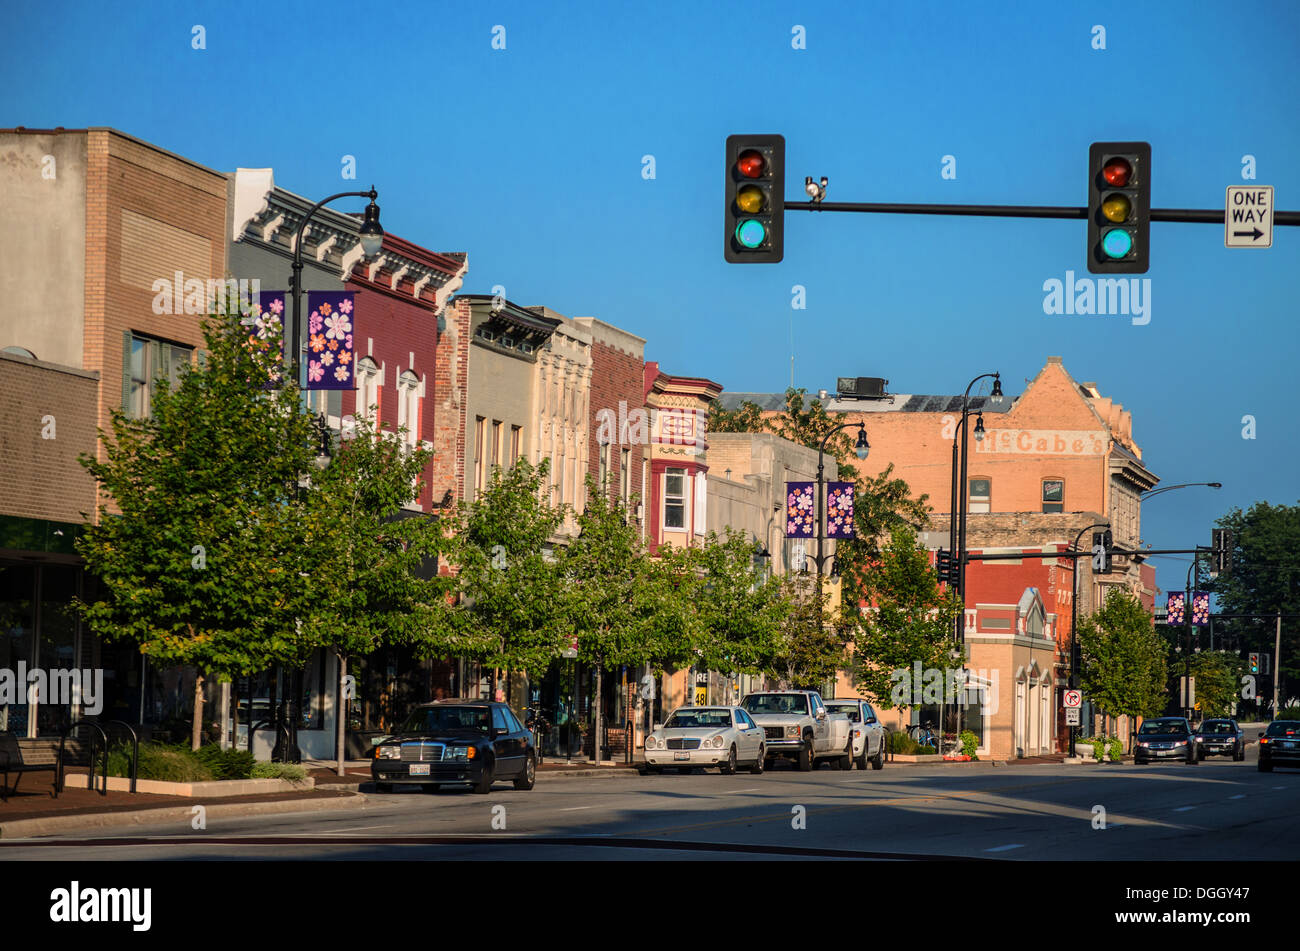 Historic buildings in downtown DeKalb, Illinois, a town along the Lincoln Highway - Stock Image